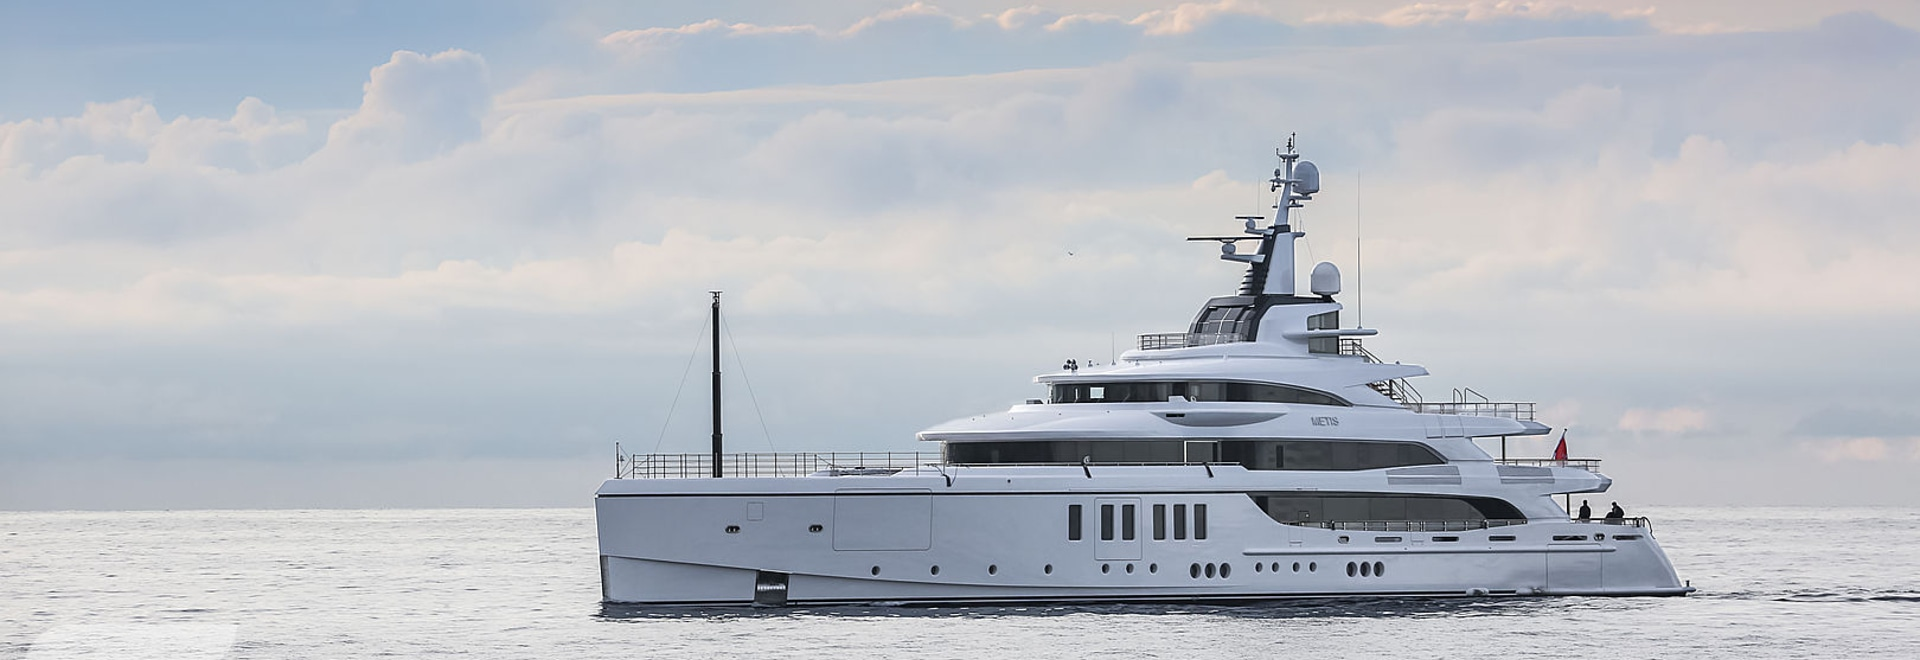 Benetti delivers 63m superyacht Metis